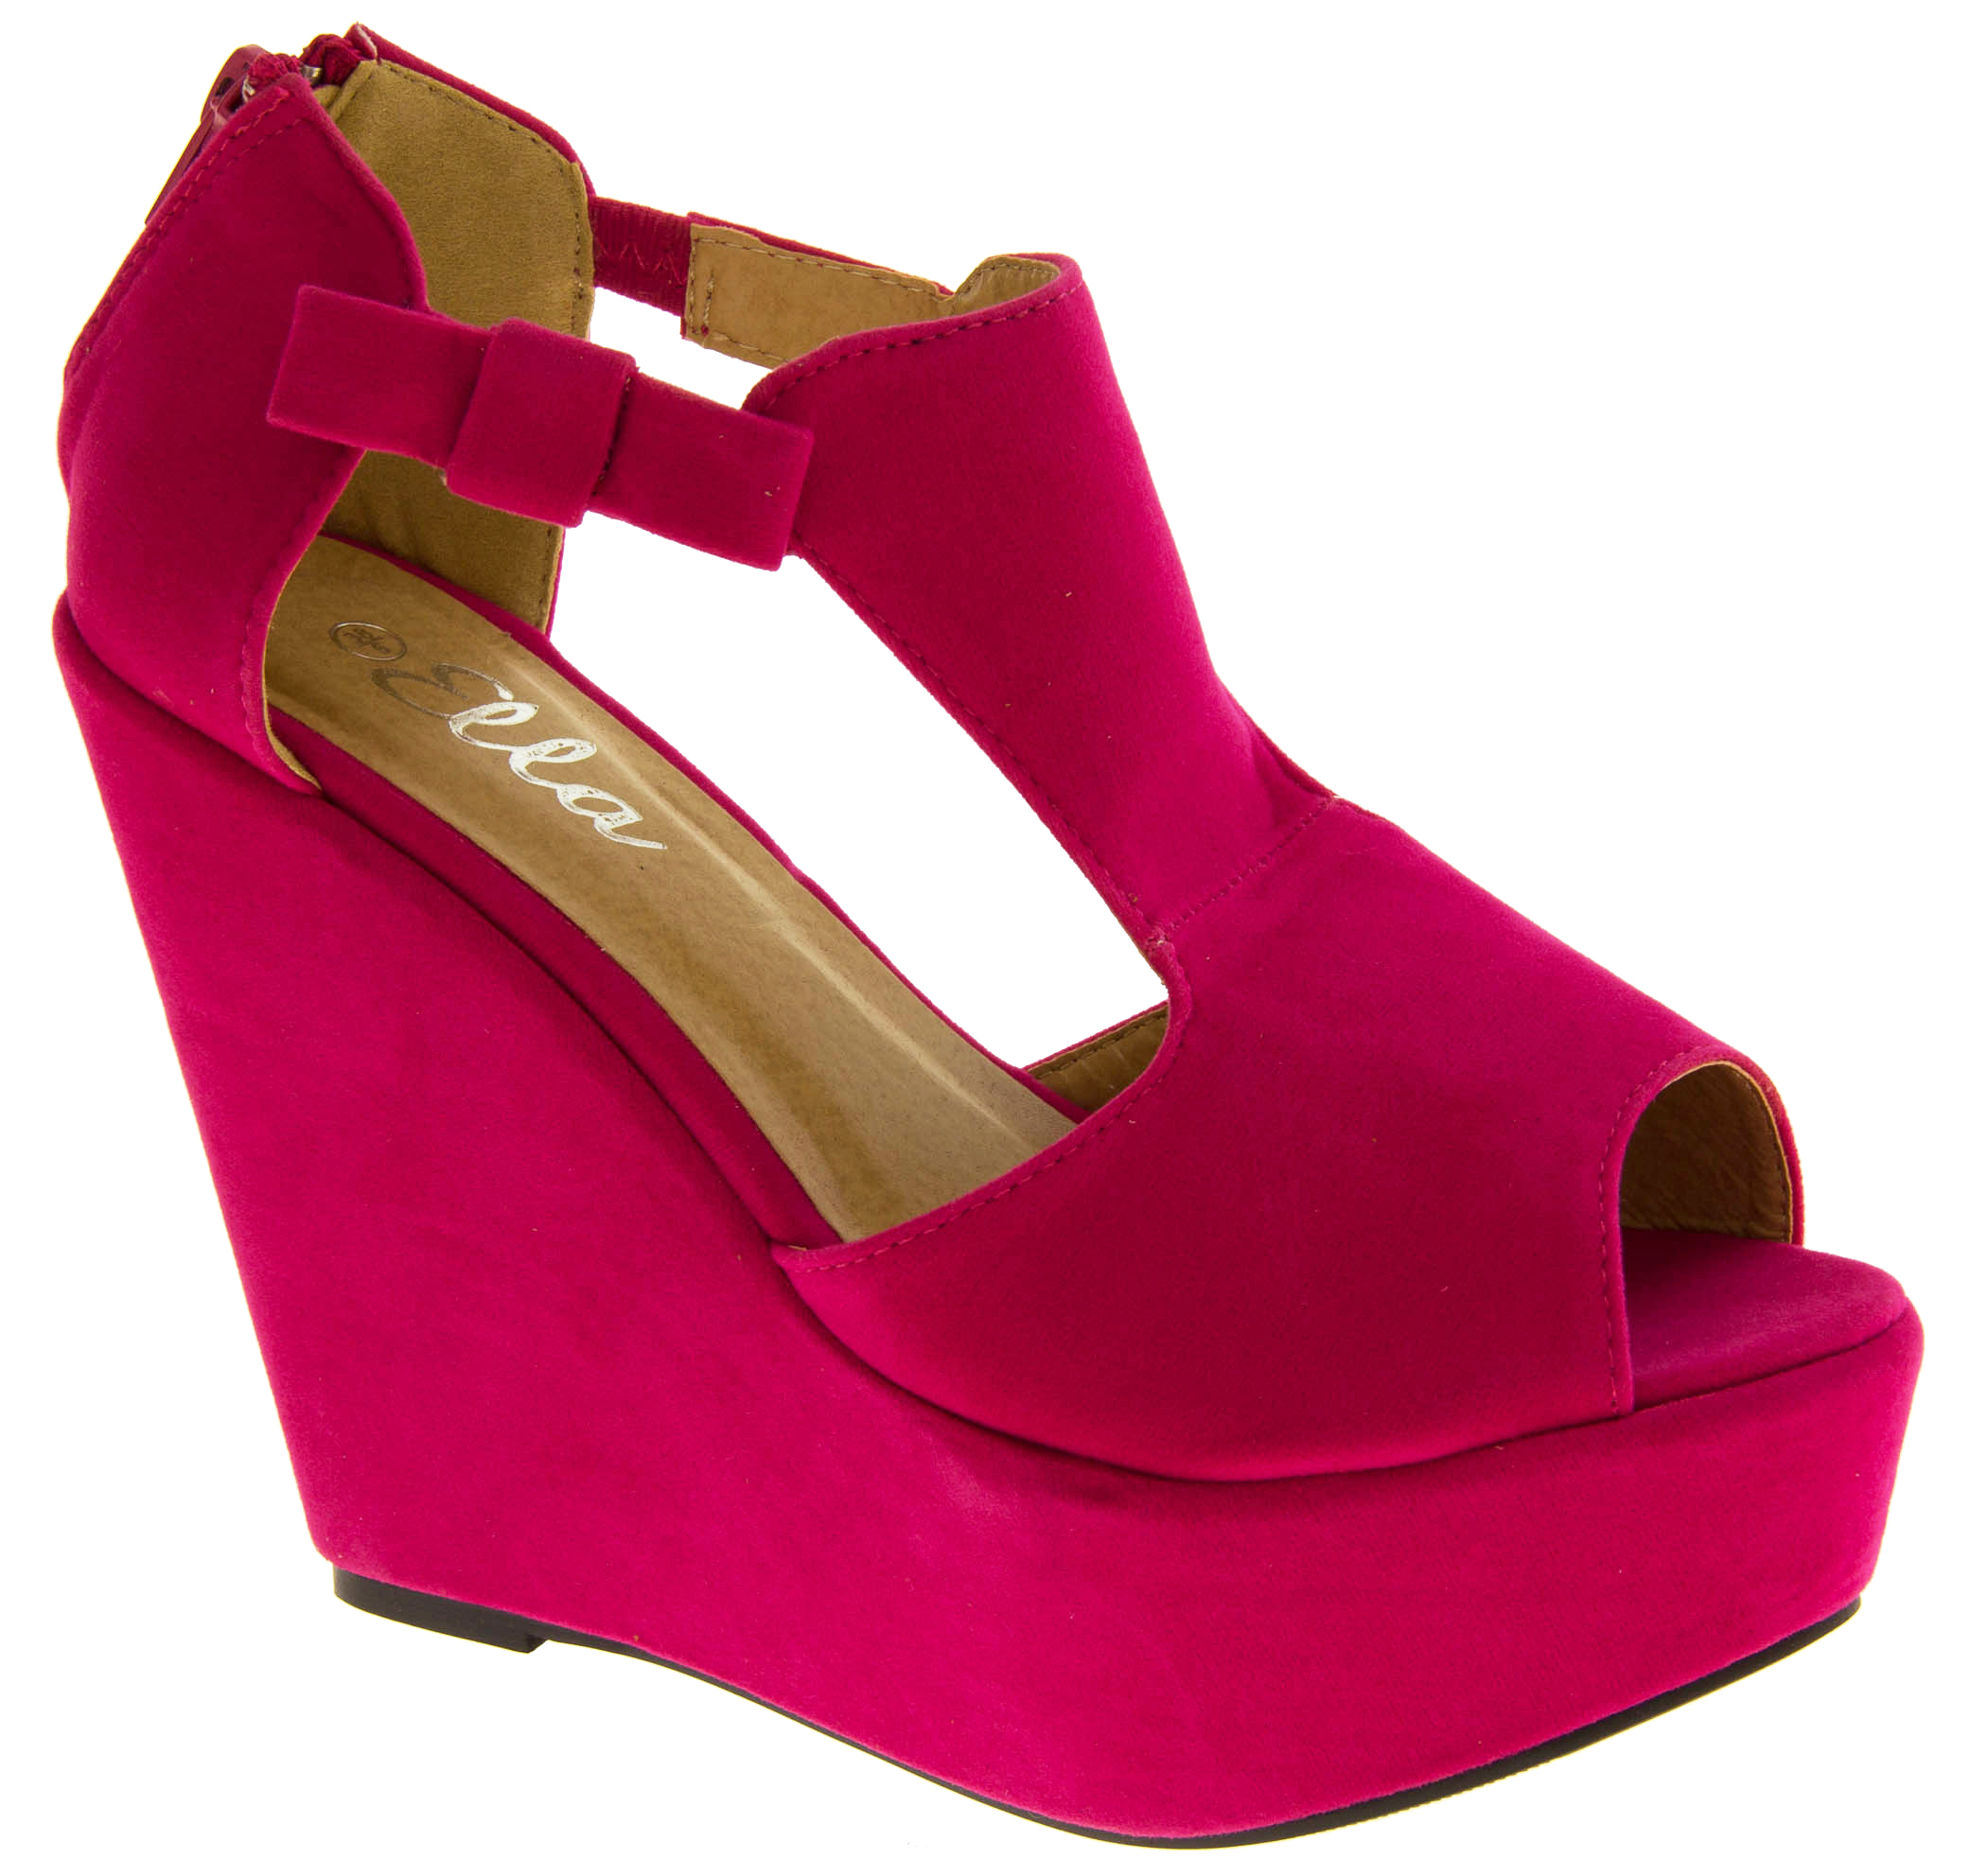 Amazoncom pink high heels Clothing Shoes amp Jewelry